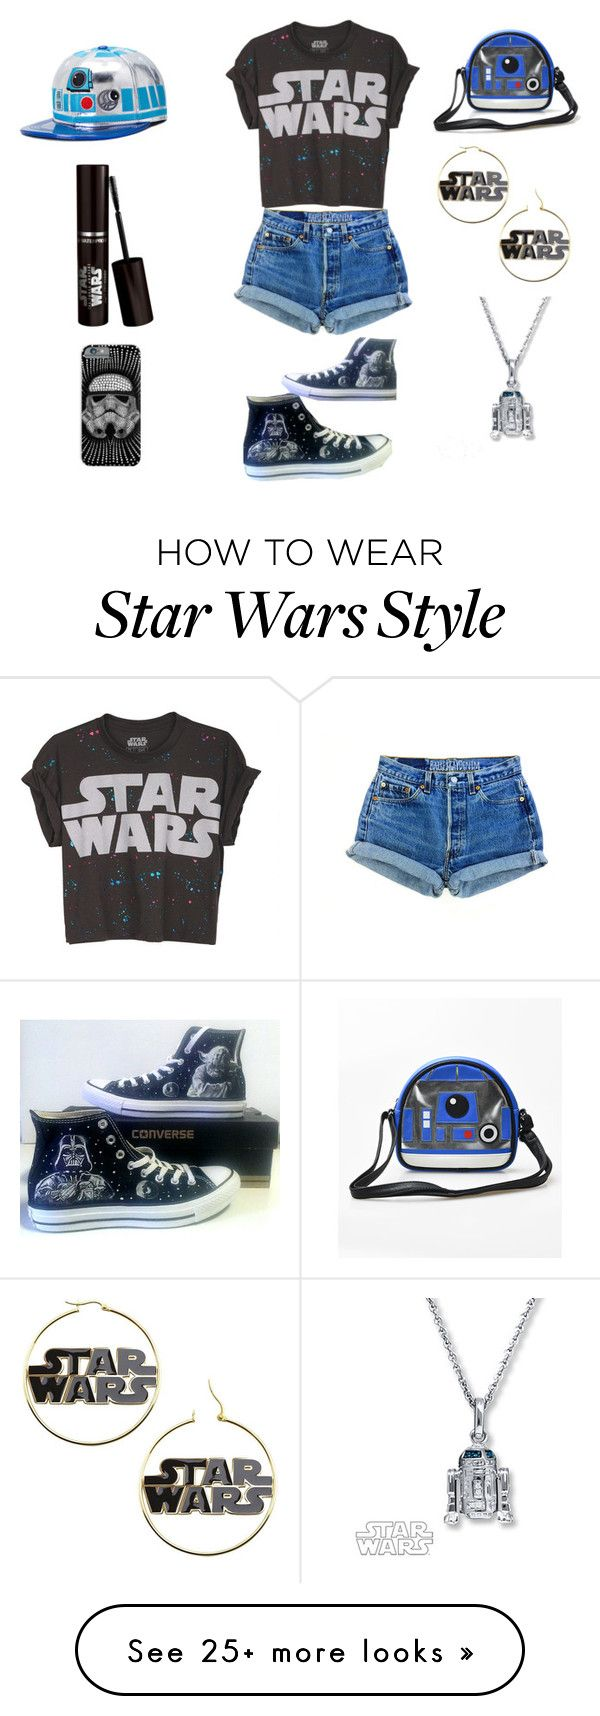 This is cute but it looks like an outfit that a girl who doesn't really know star wars would wear...